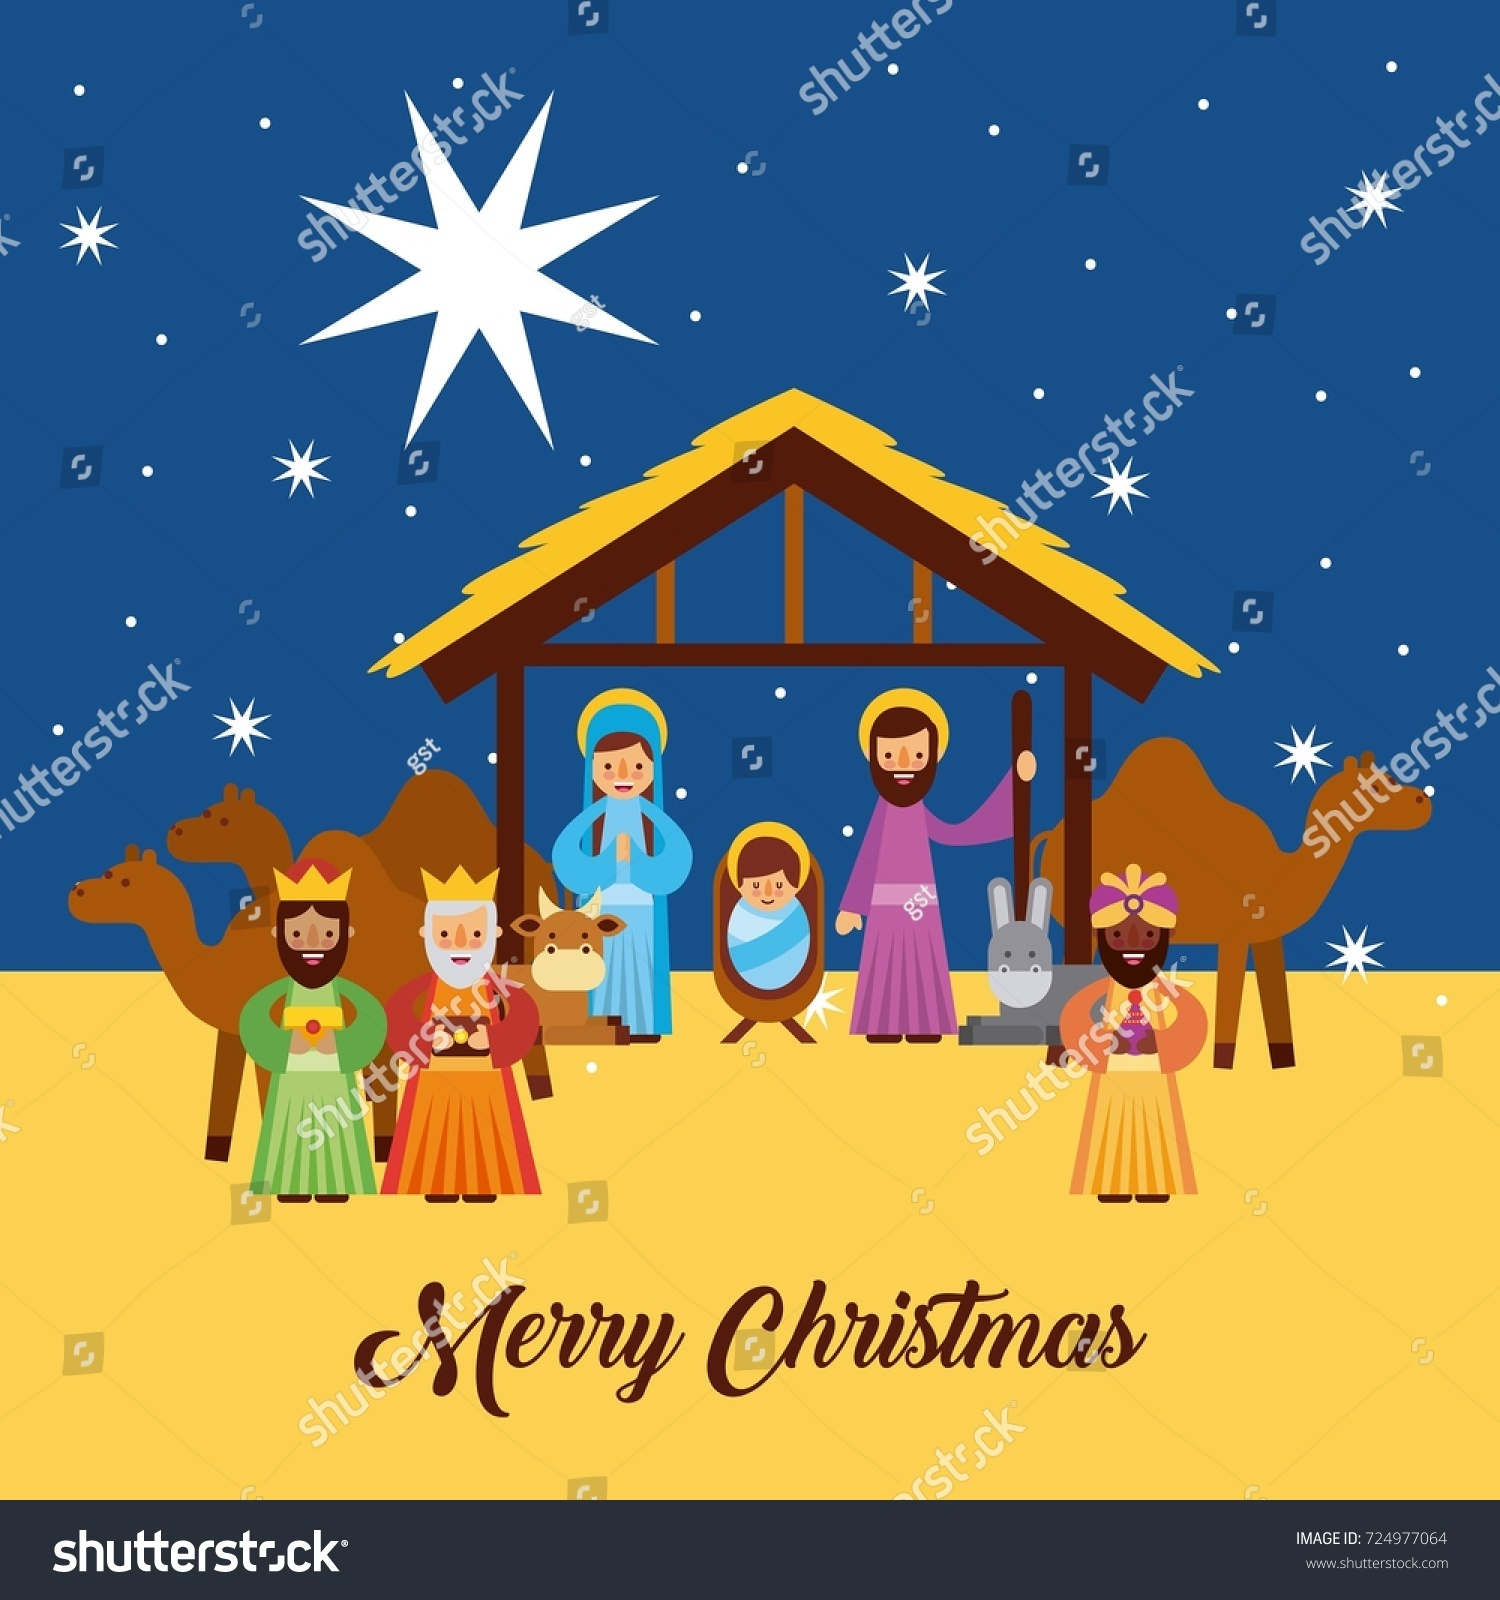 Merry christmas greetings jesus born manger stock vector 724977064 merry christmas greetings with jesus born in manger joseph and mary wise king characters kristyandbryce Image collections